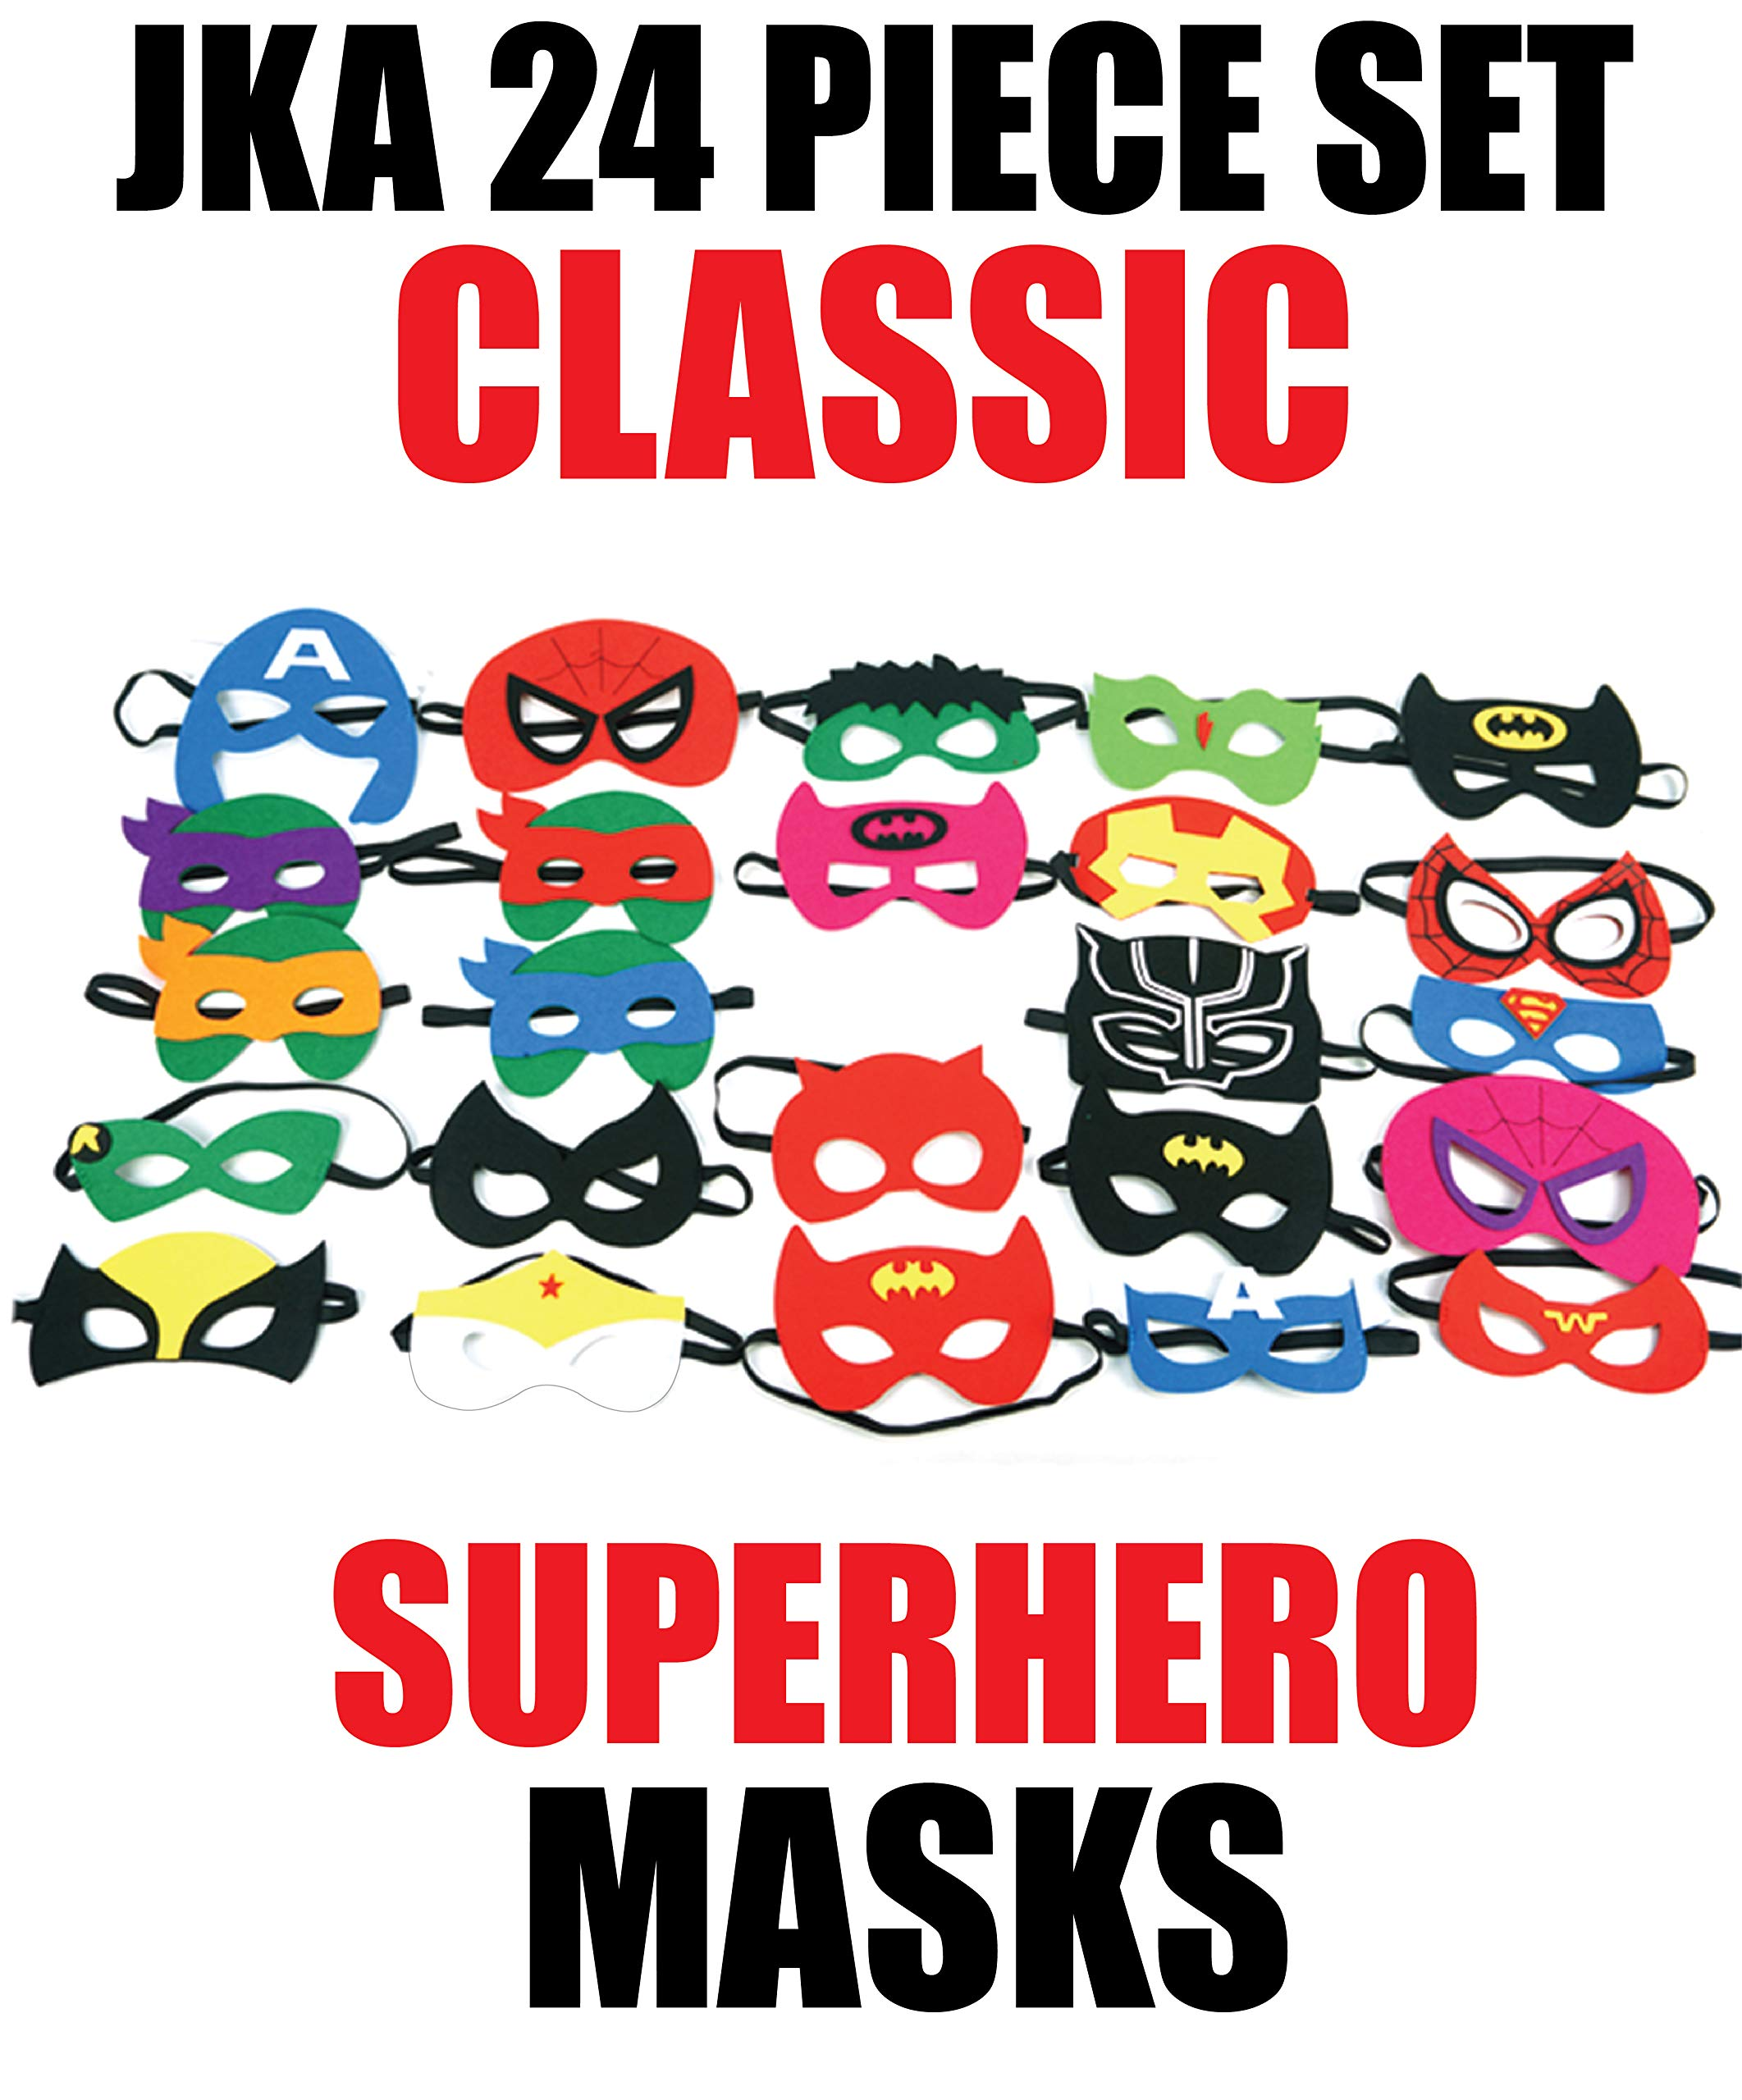 JKA 24pcs Classic Superhero Felt Masks Selection for Kids - Perfect for Birthday Parties, Halloween, Photo Booth, Party Supplies/Gifts. Children Boys and Girls Aged 3+